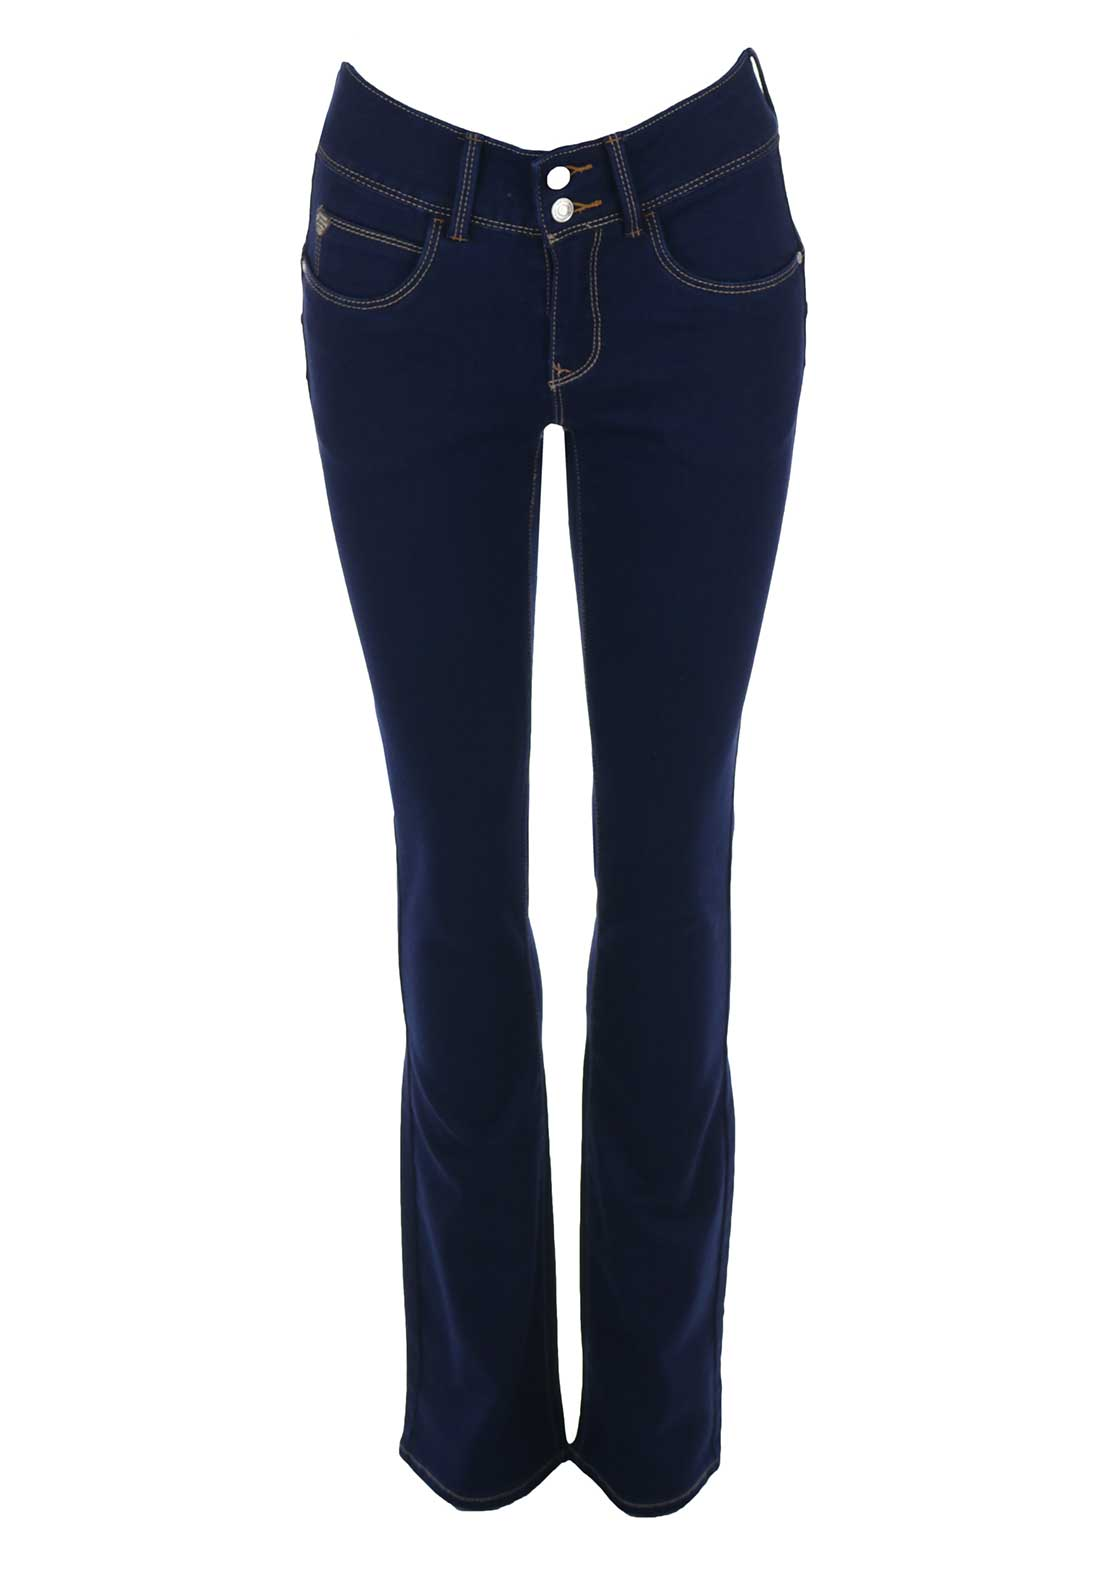 Rant & Rave Edith Bootcut Jeans, Blue